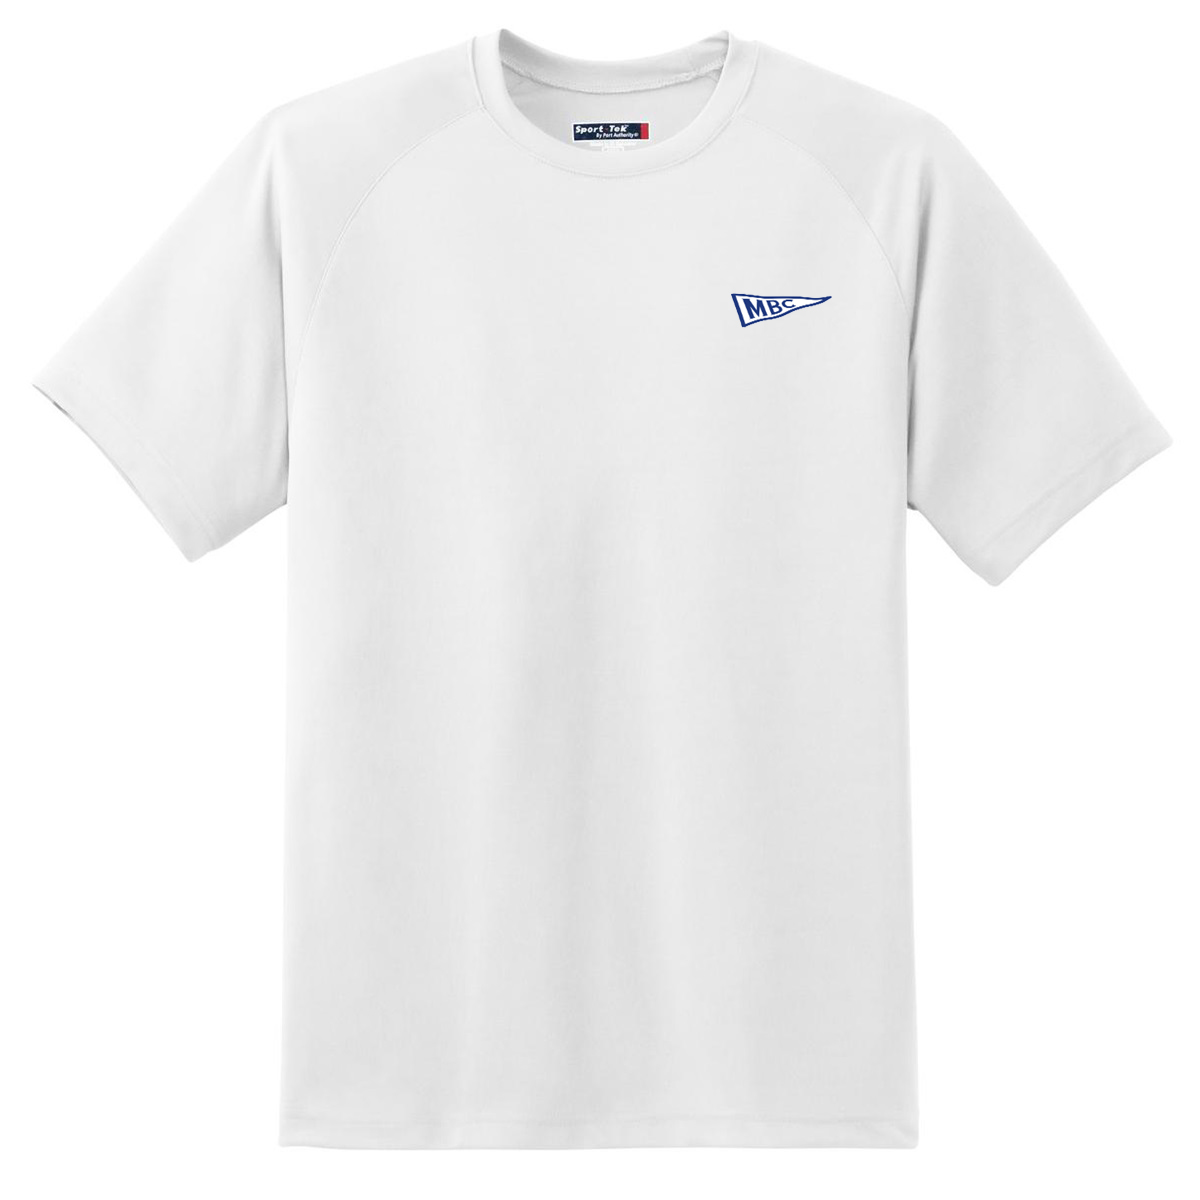 MONMOUTH BC M'S S/S TECH TEE